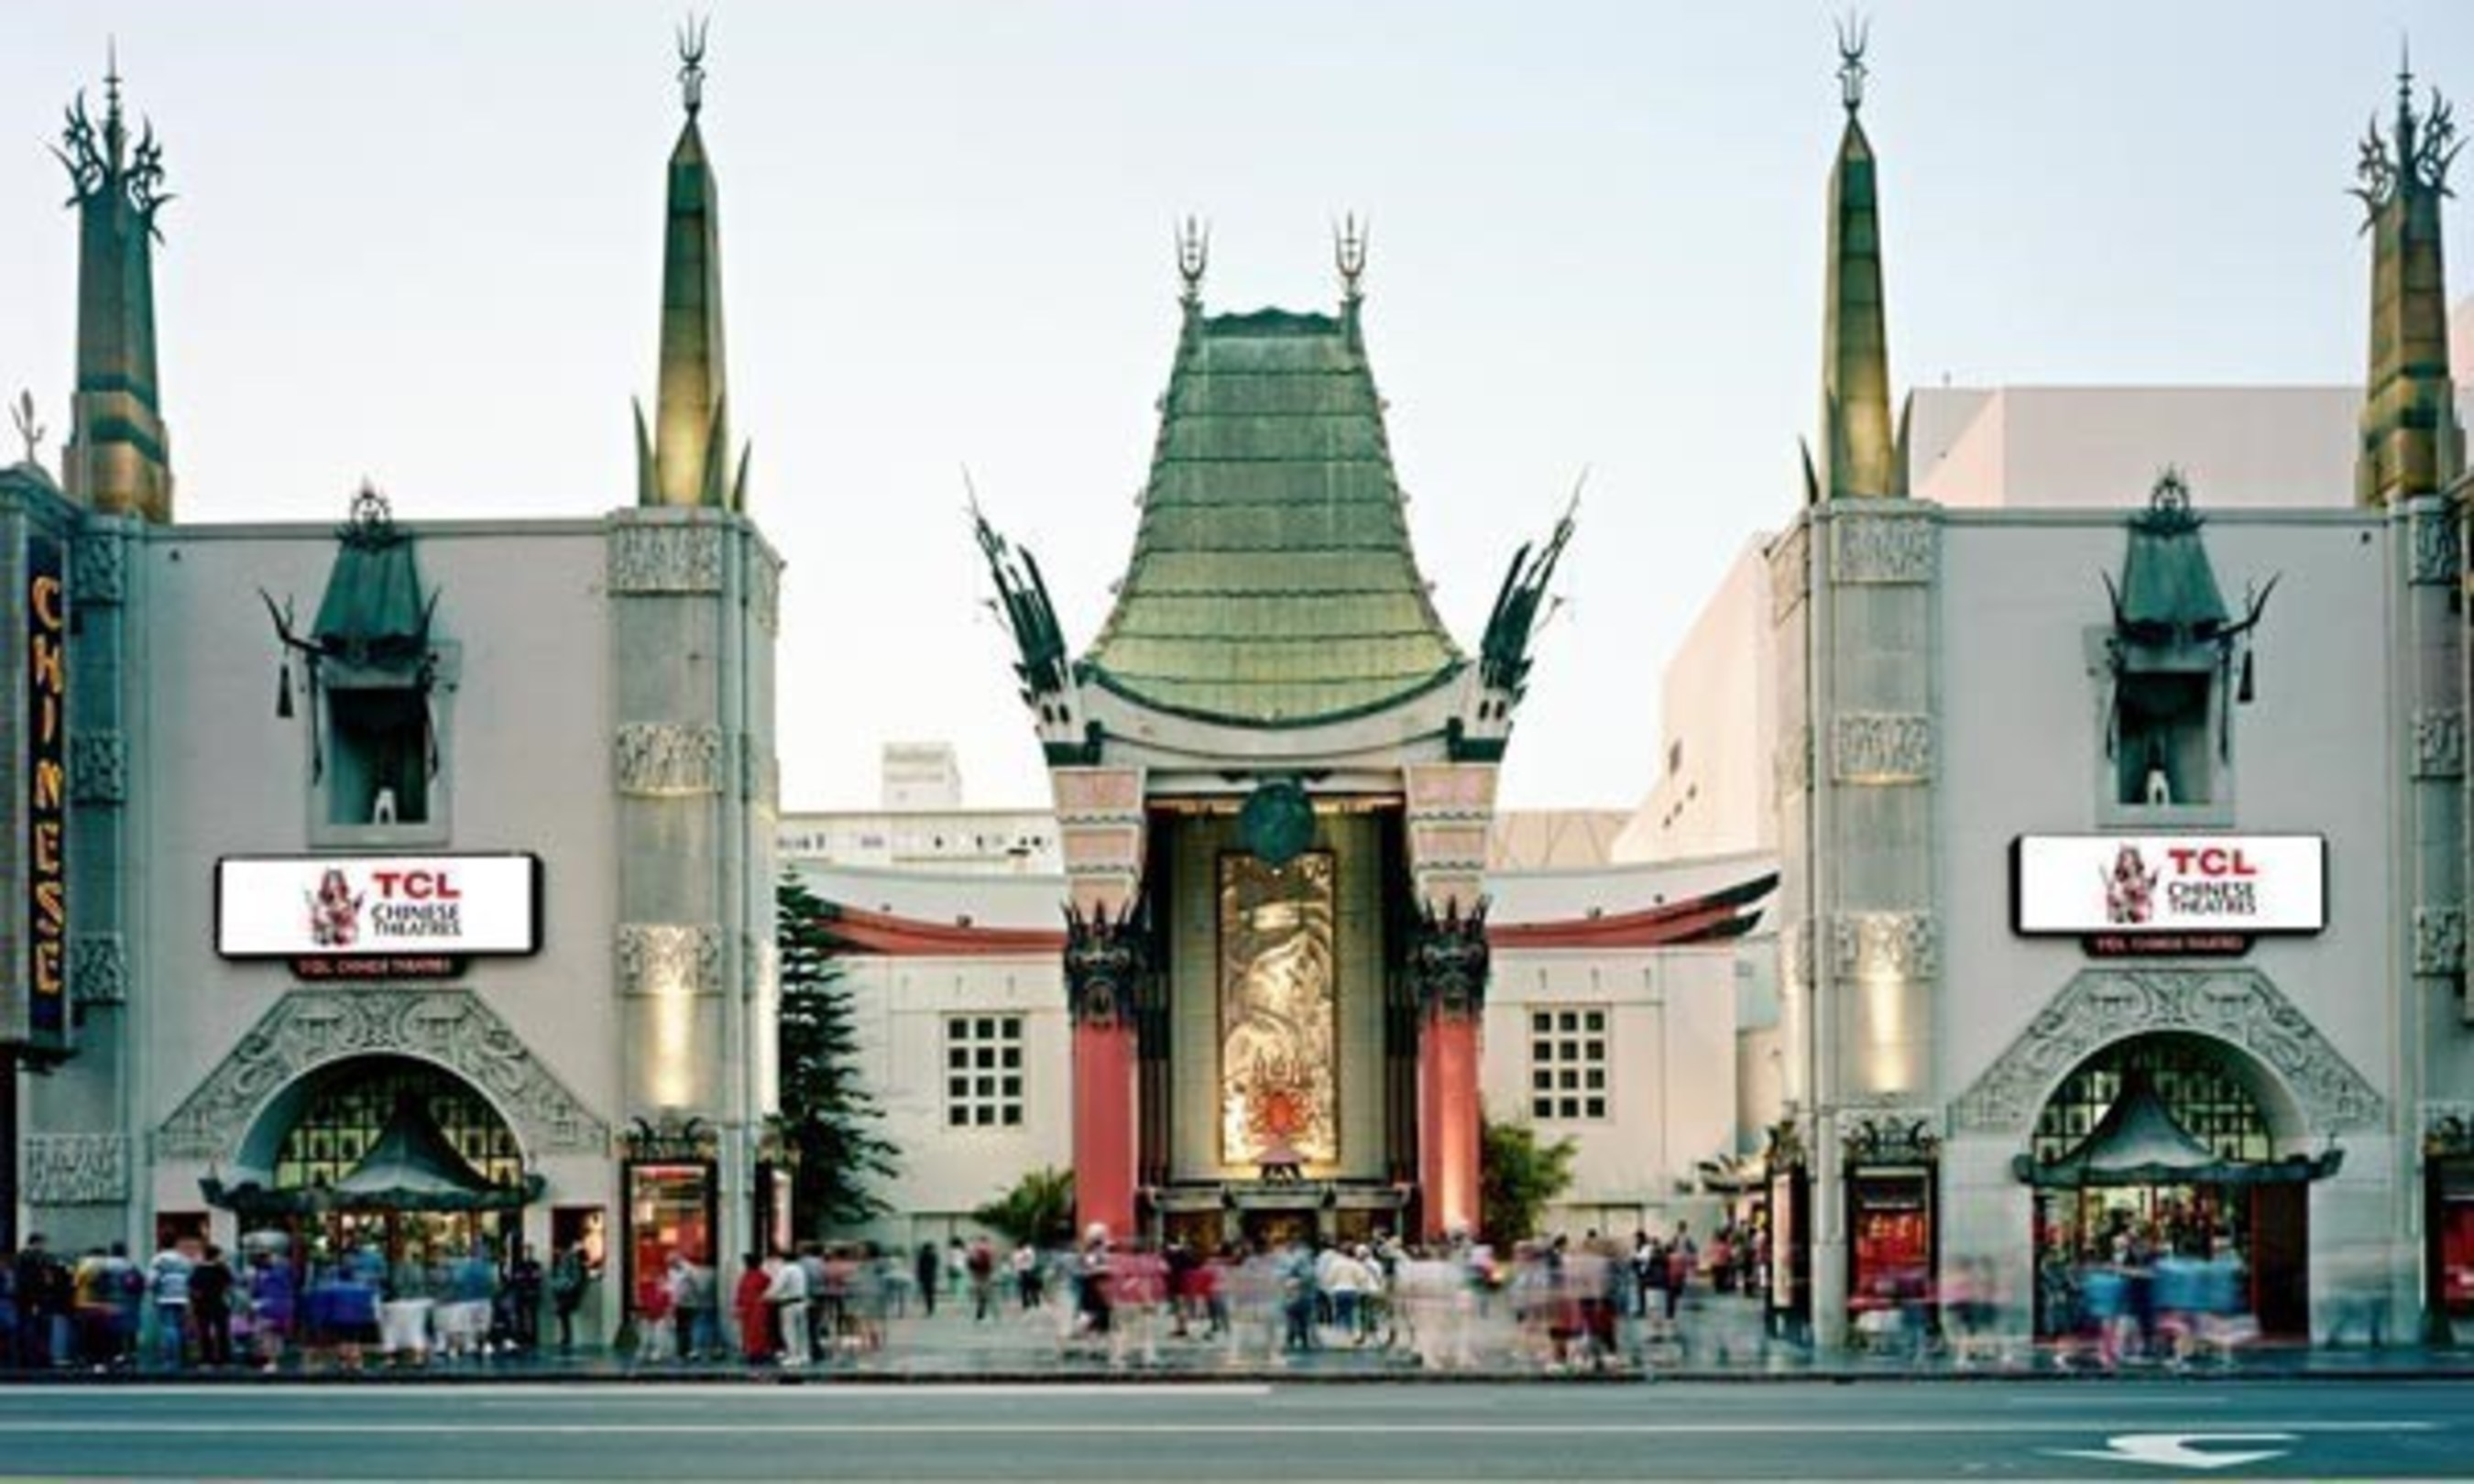 TCL Square Opens at the TCL Hollywood Chinese Theatre